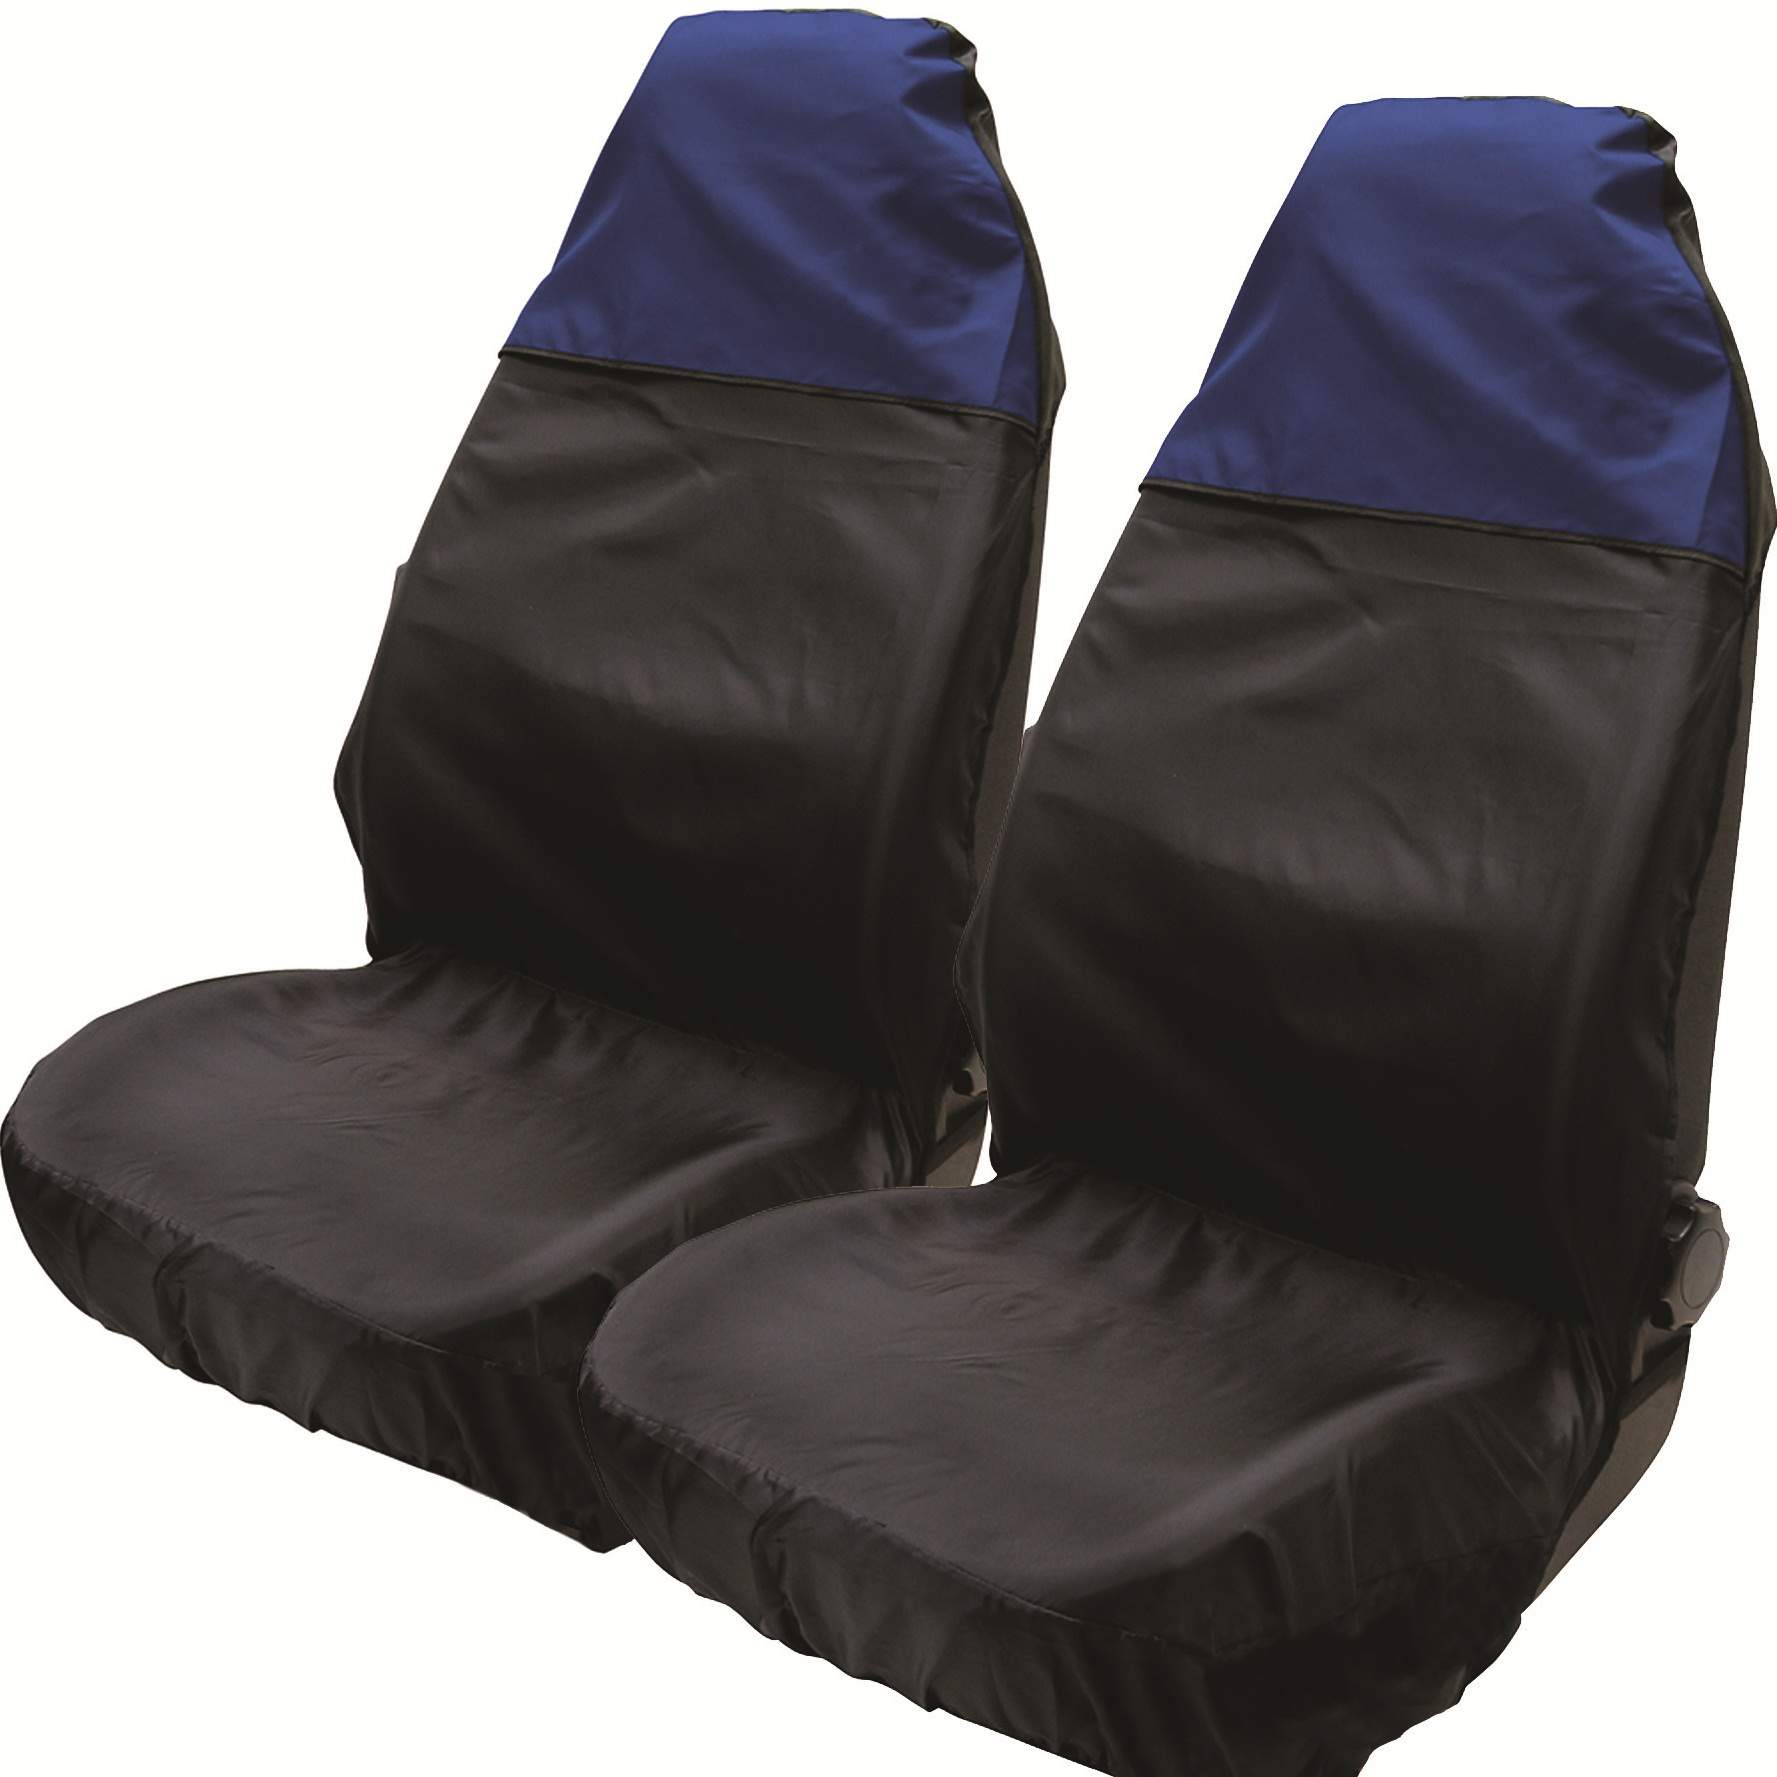 Waterproof Chair Covers Front Waterproof Car Seat Covers Universal Fit At Care4car